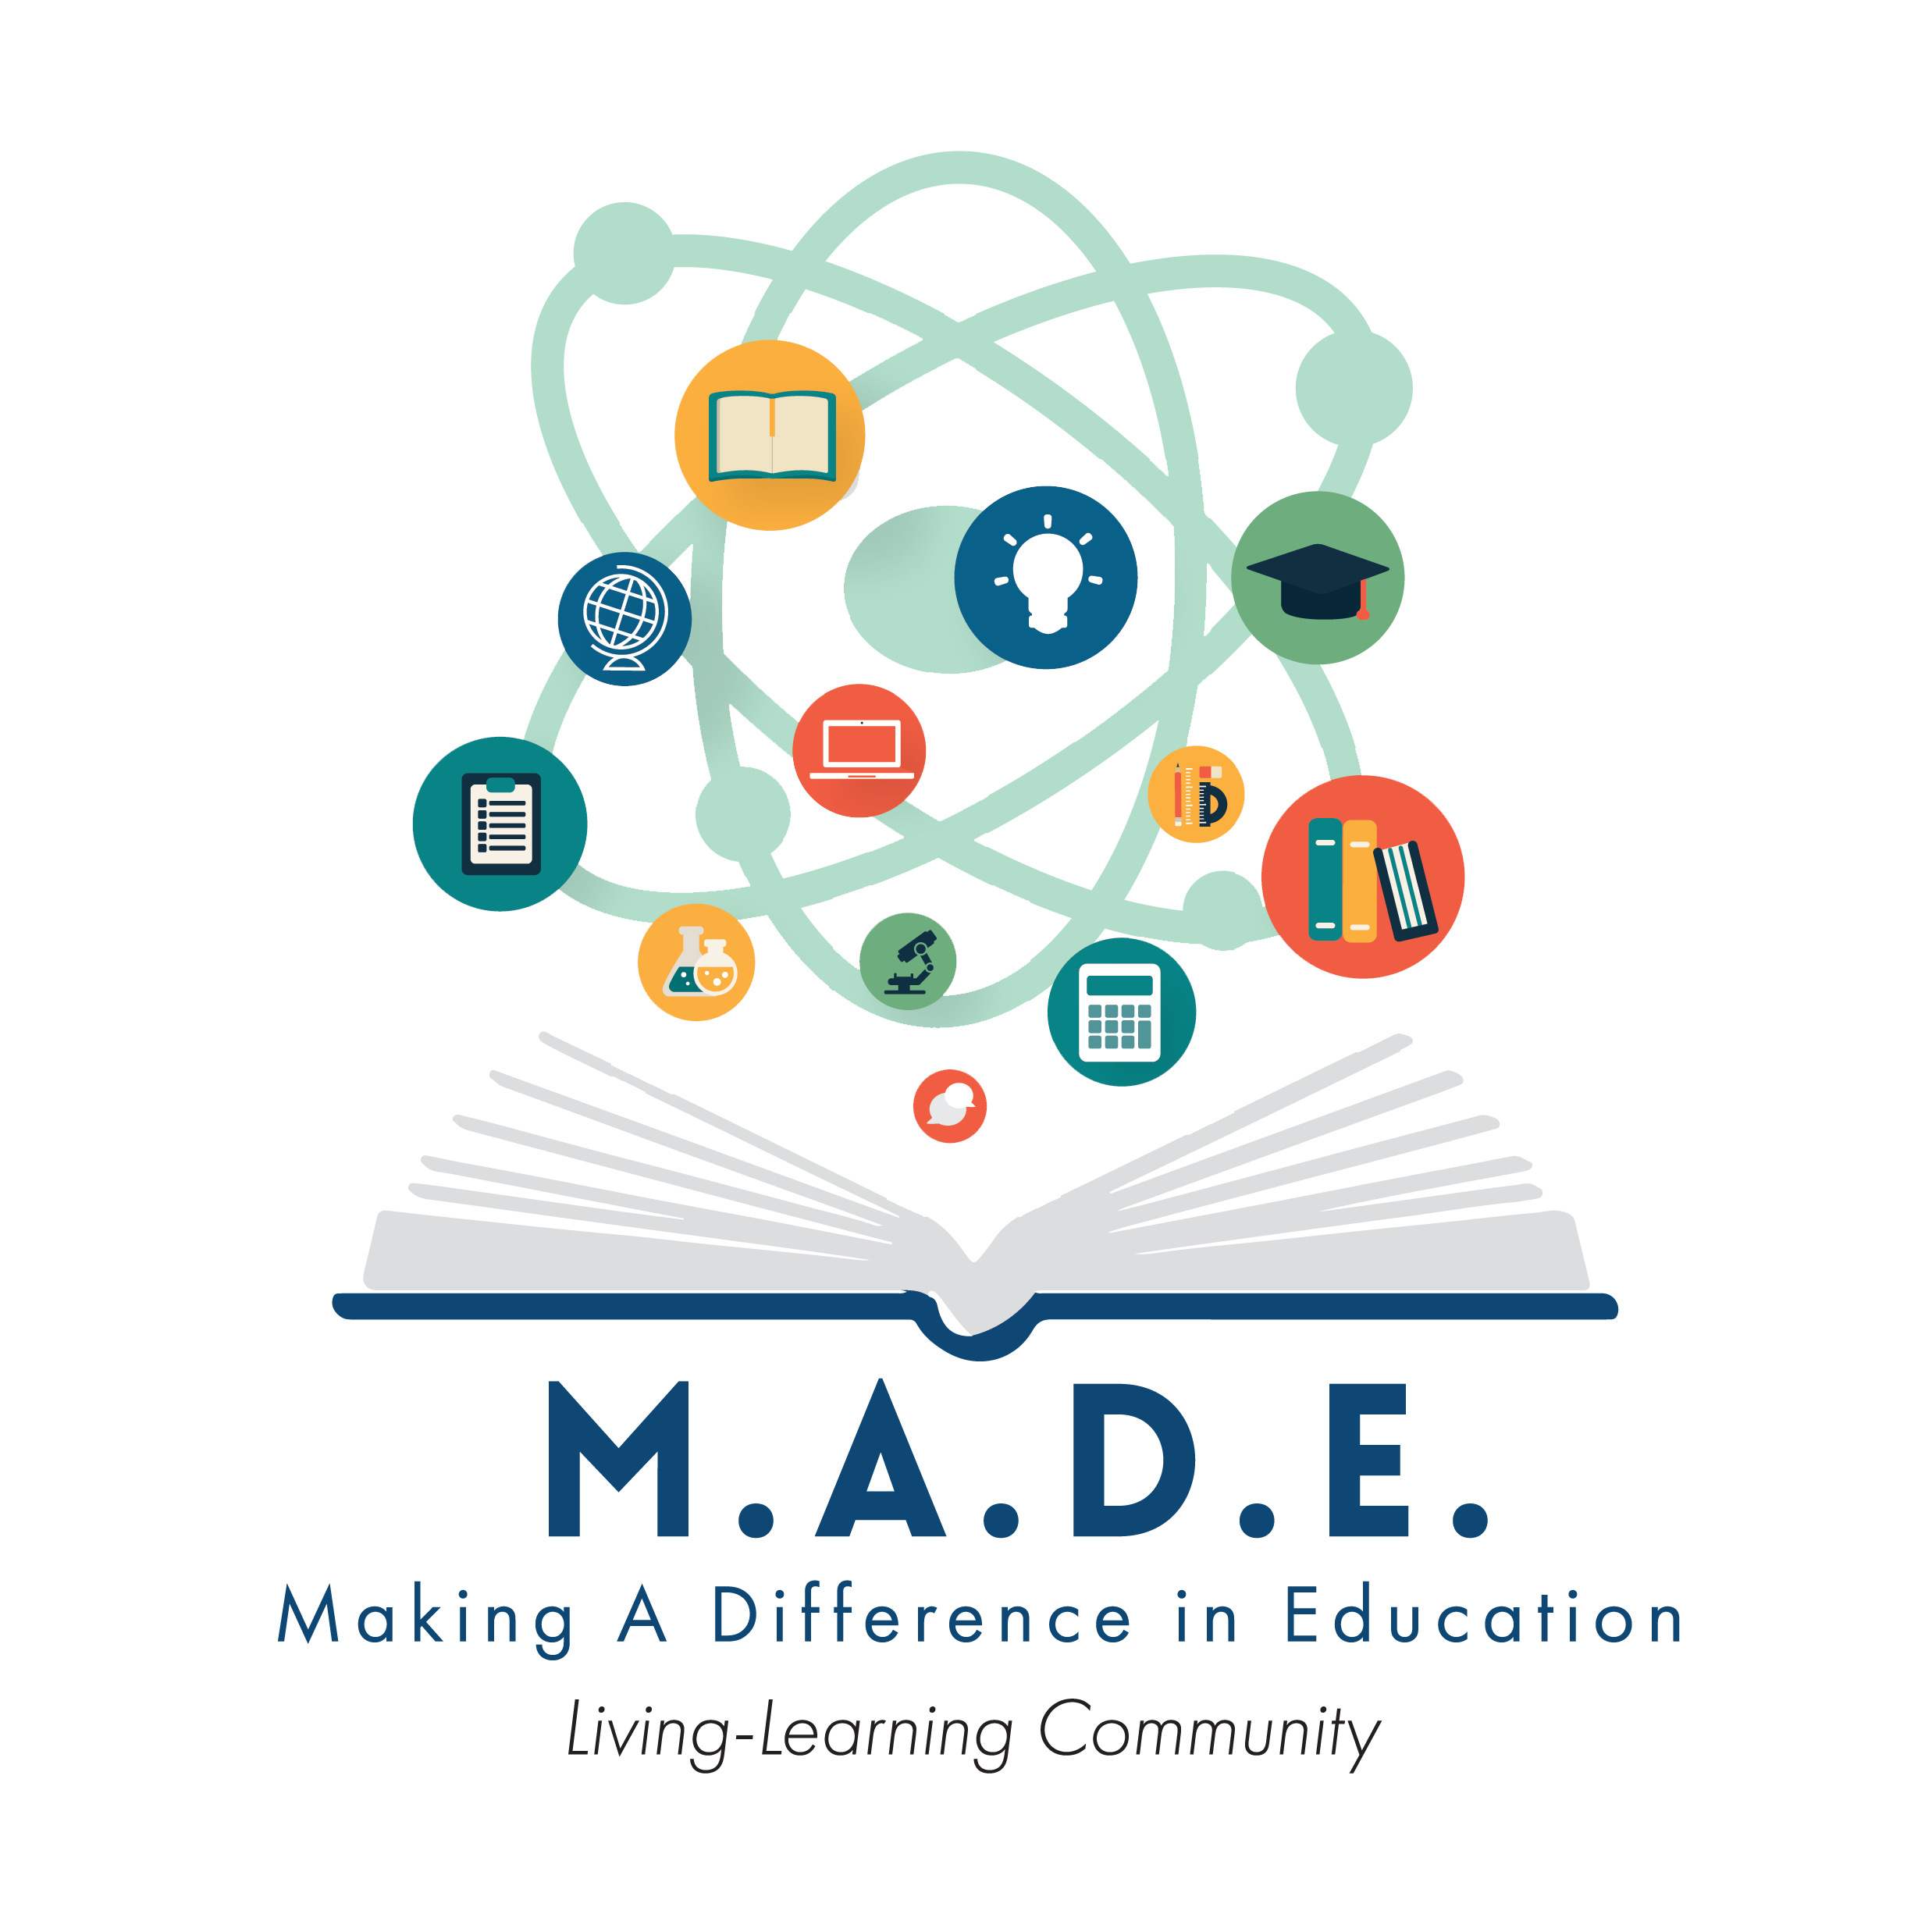 Making a difference in education logo